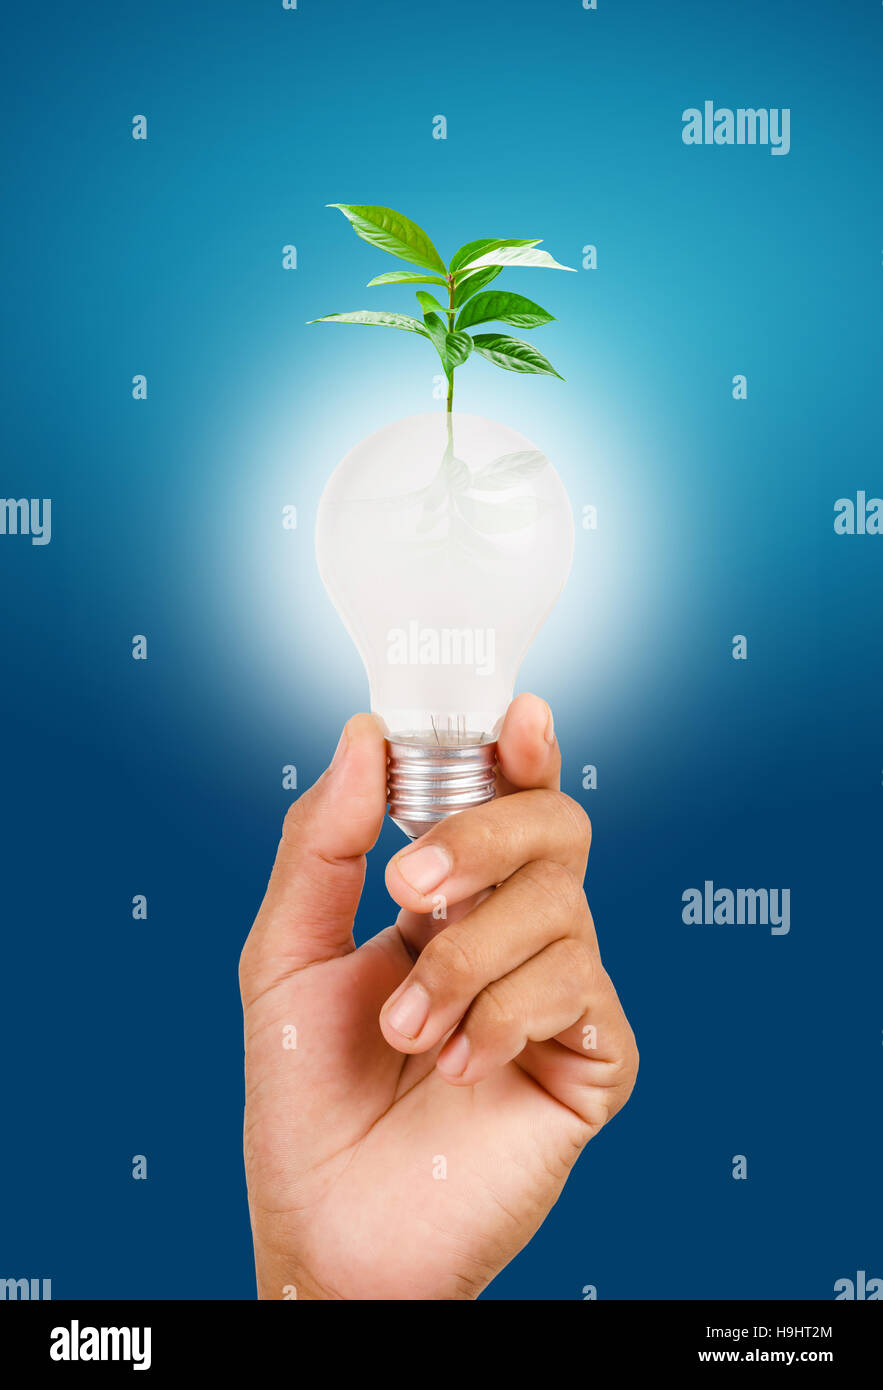 energy and environmental conservation concept. - Stock Image